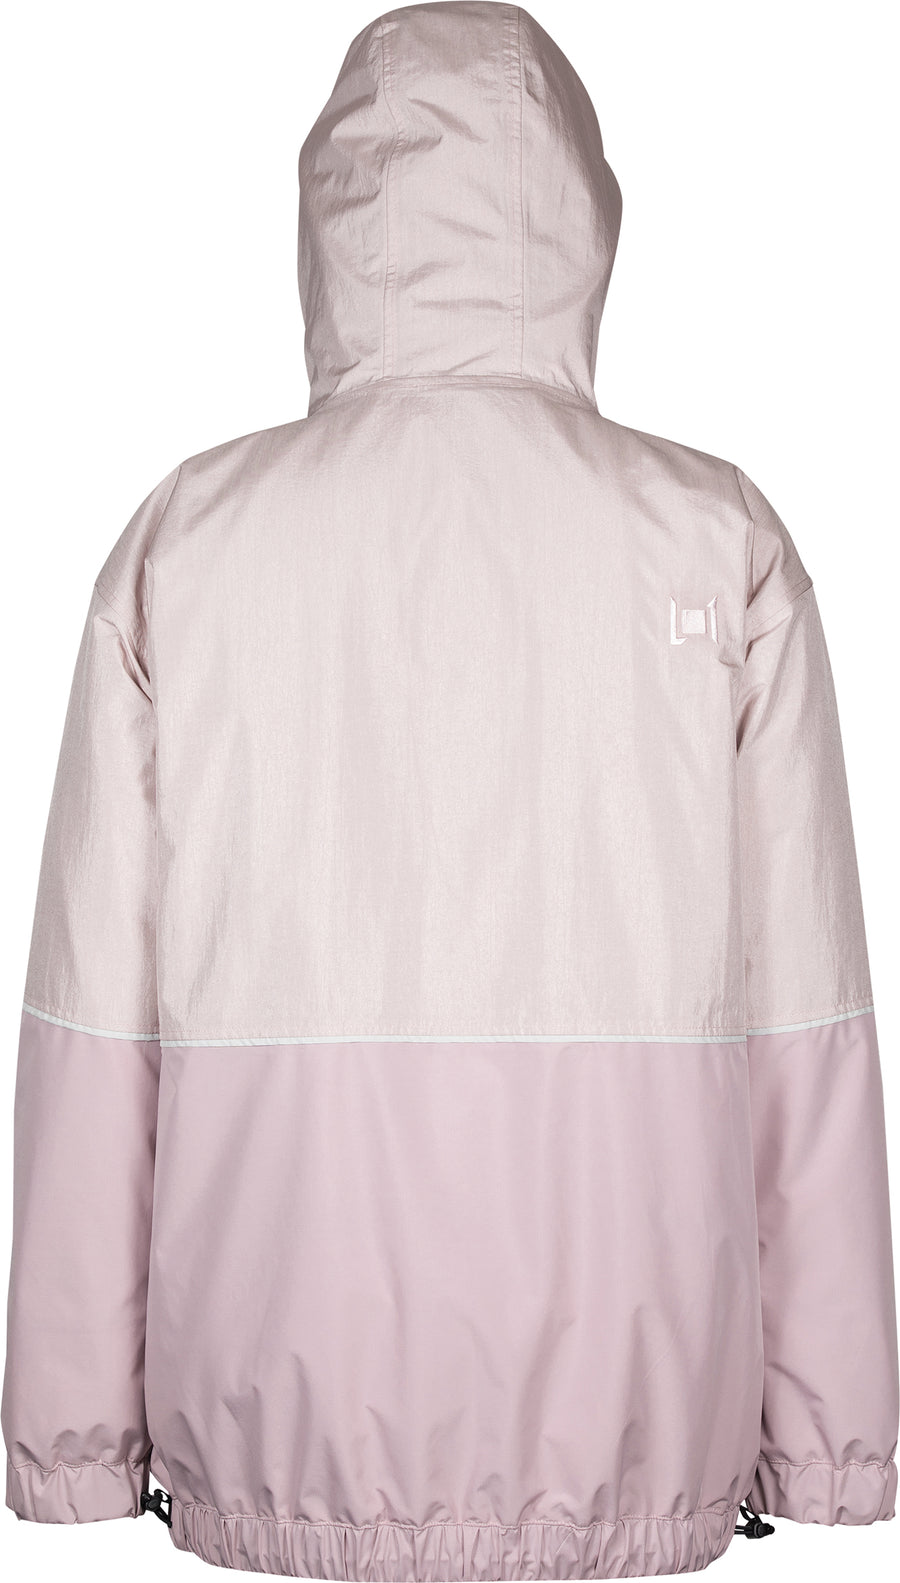 2021 L1 Ventura Snow  Jacket in Lavender Ice and Ghost